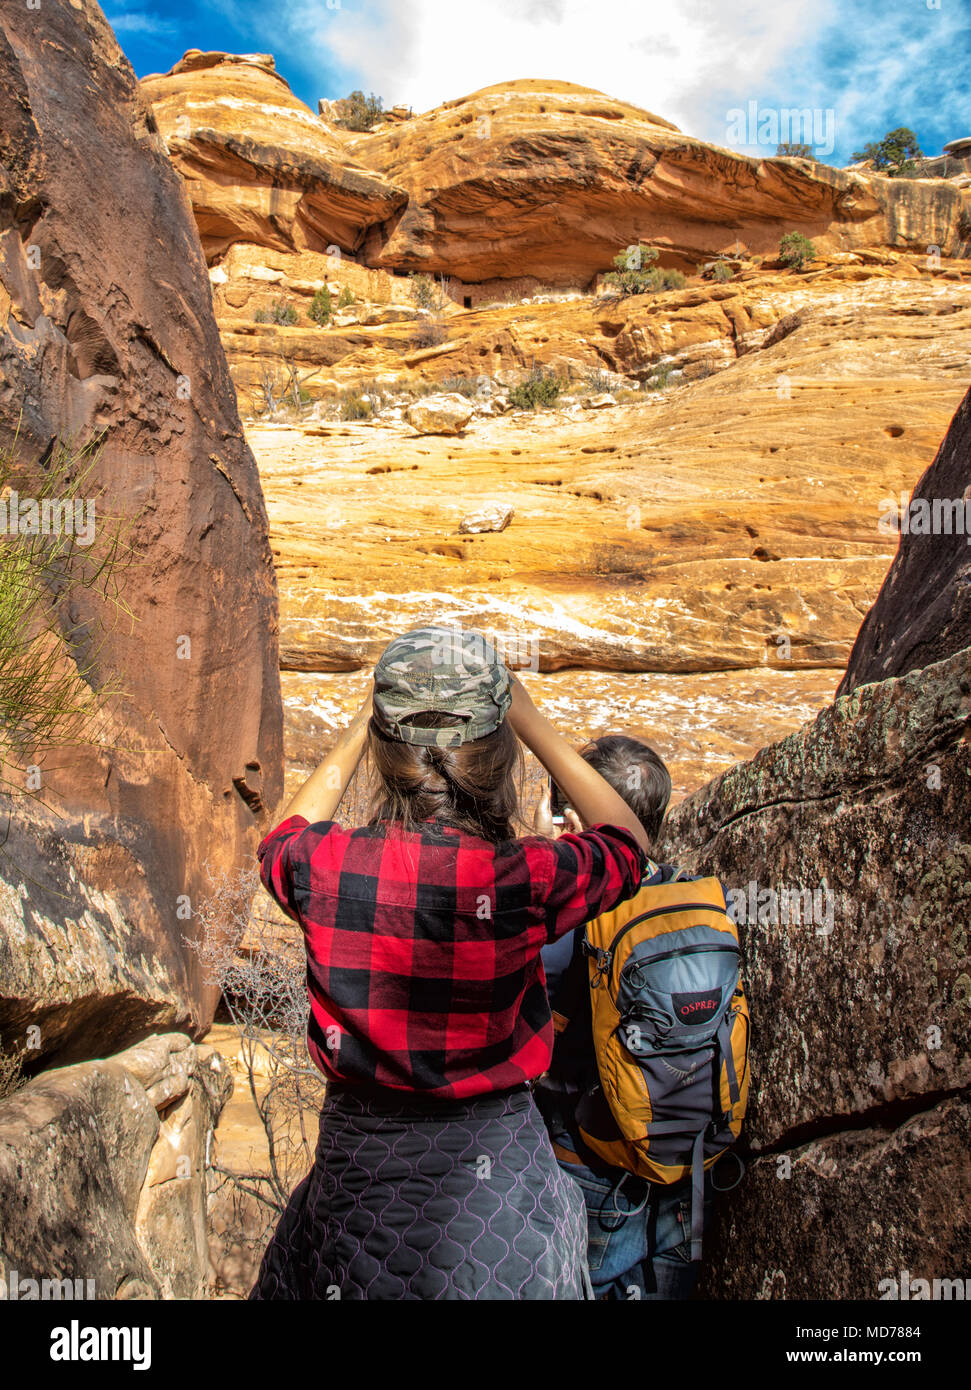 A young teen girl pauses to take a photo while hiking in Bears Ears National Monument in Utah. - Stock Image